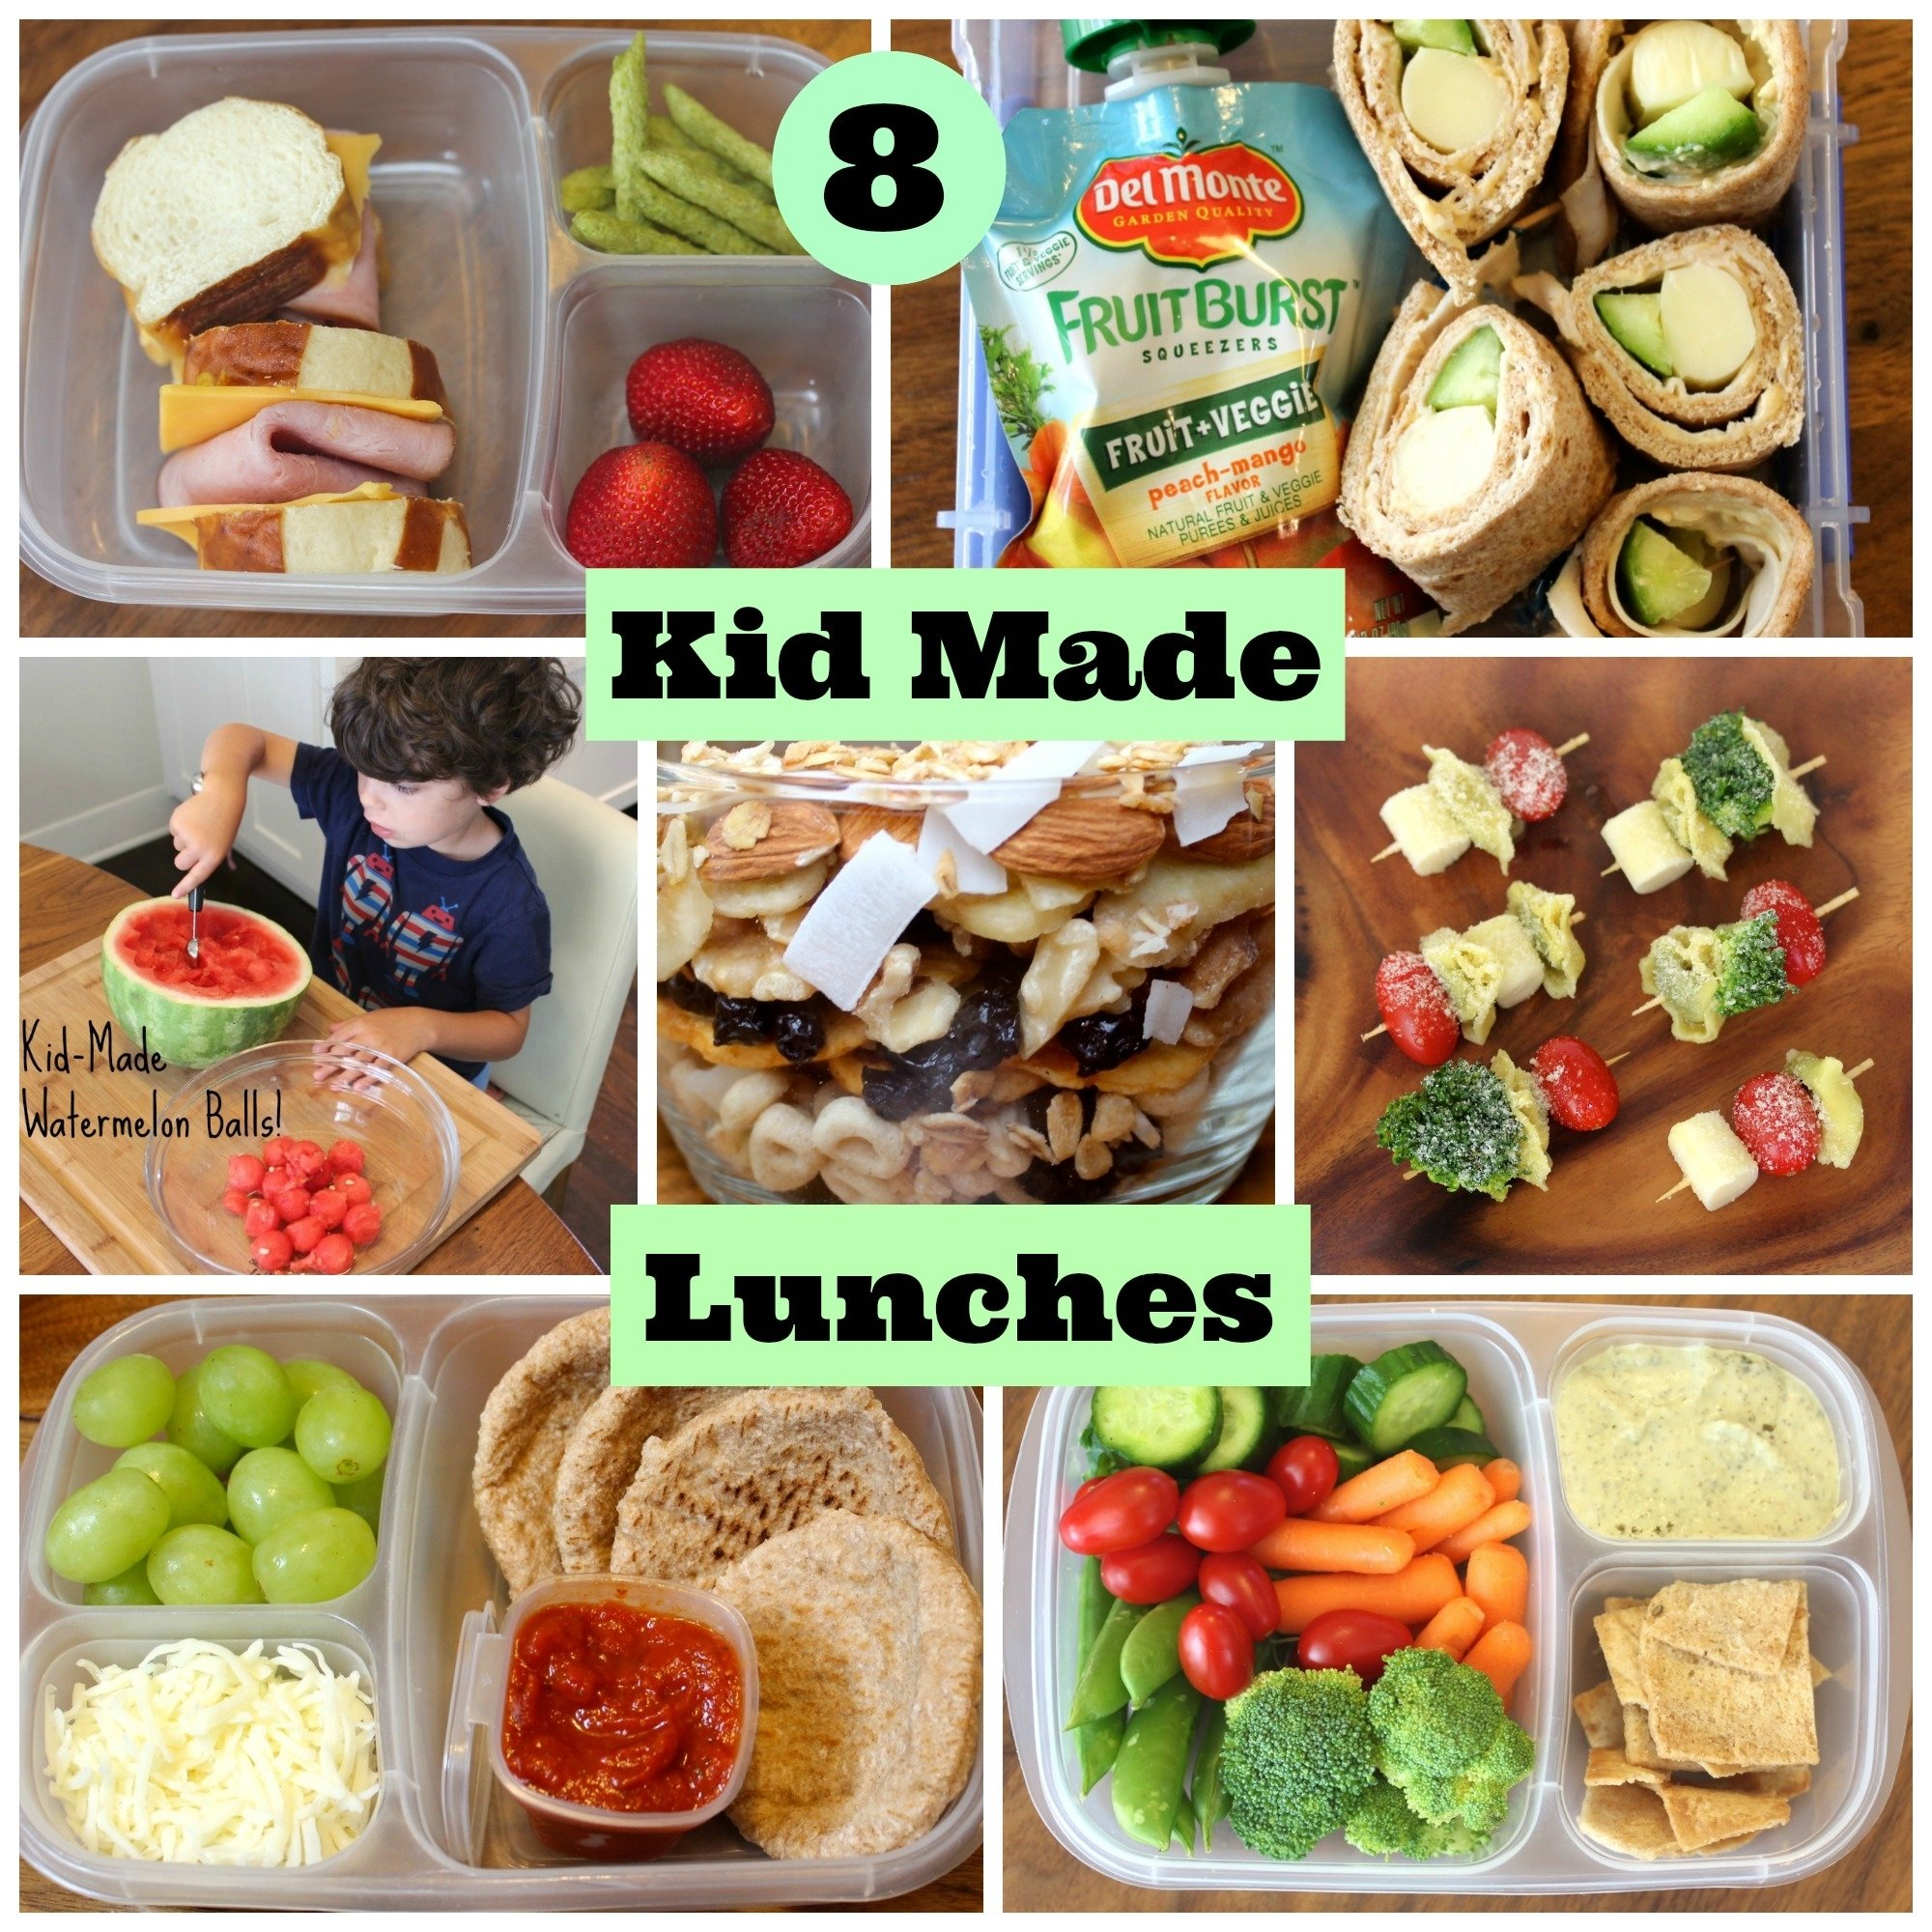 10 Stunning School Lunch Ideas For Kids 4 healthy school lunches your kids can make themselves babble 18 2020